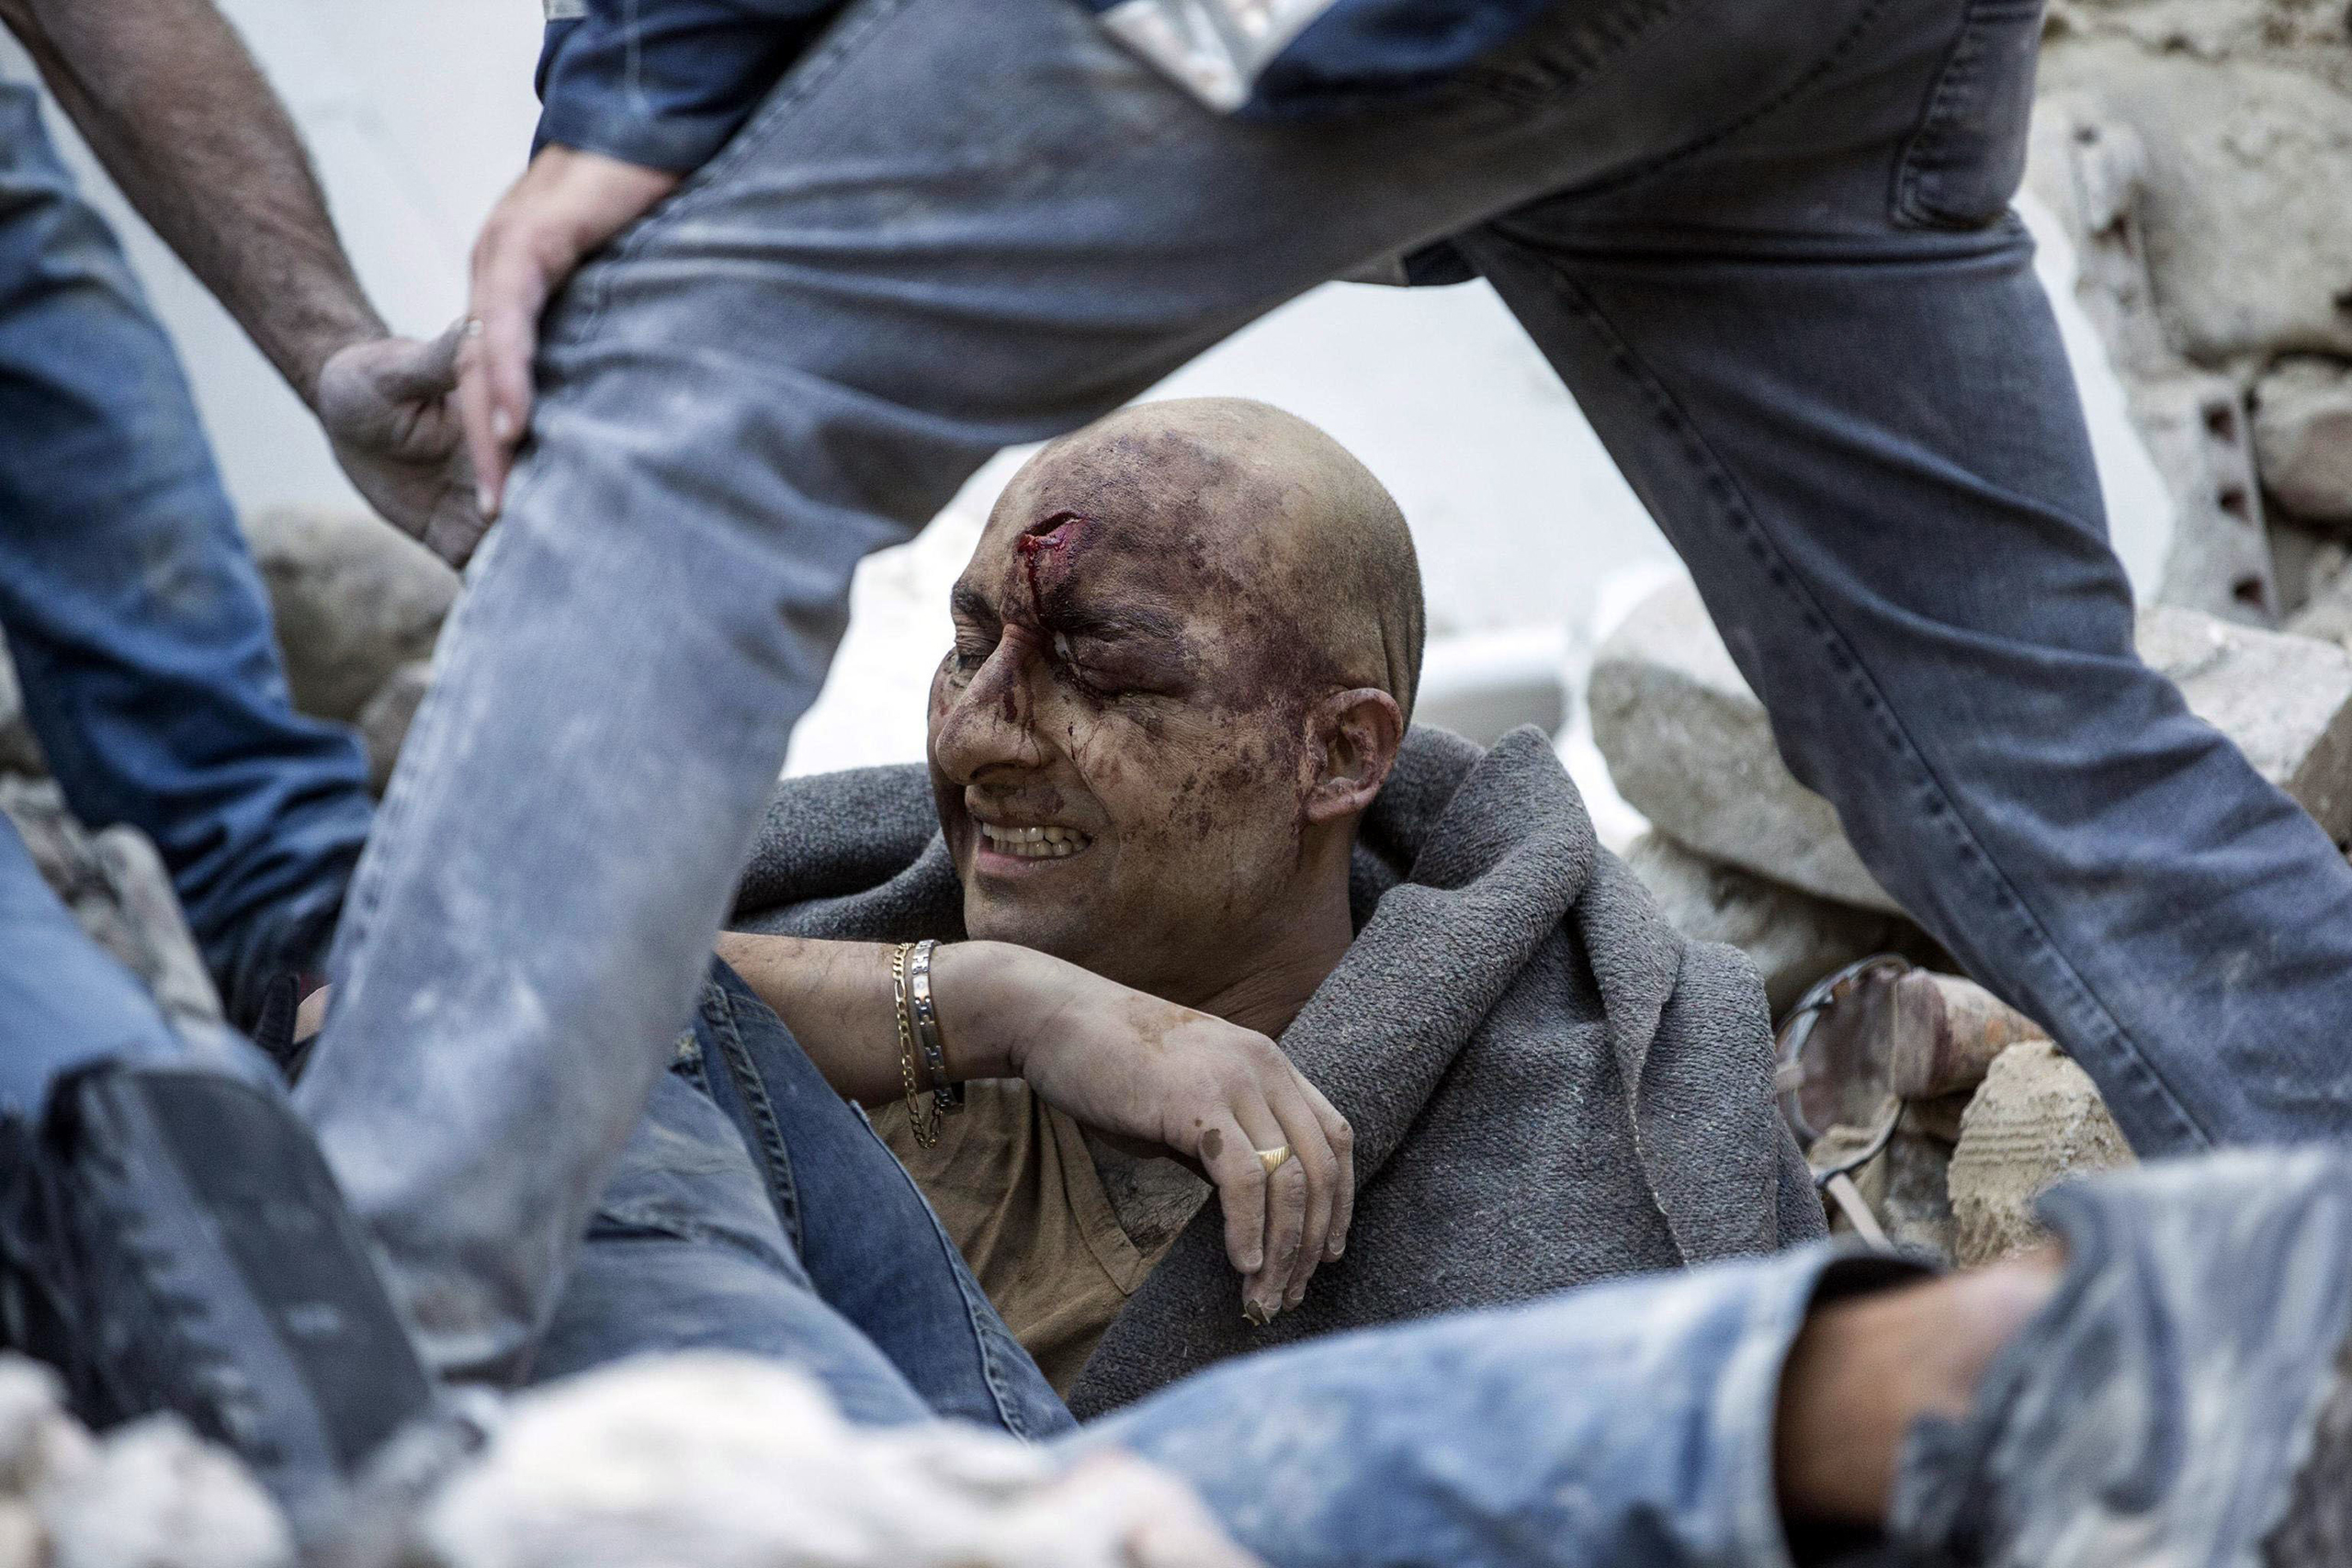 A man is pulled out of the rubble following an earthquake in Amatrice Italy, Aug. 24, 2016.